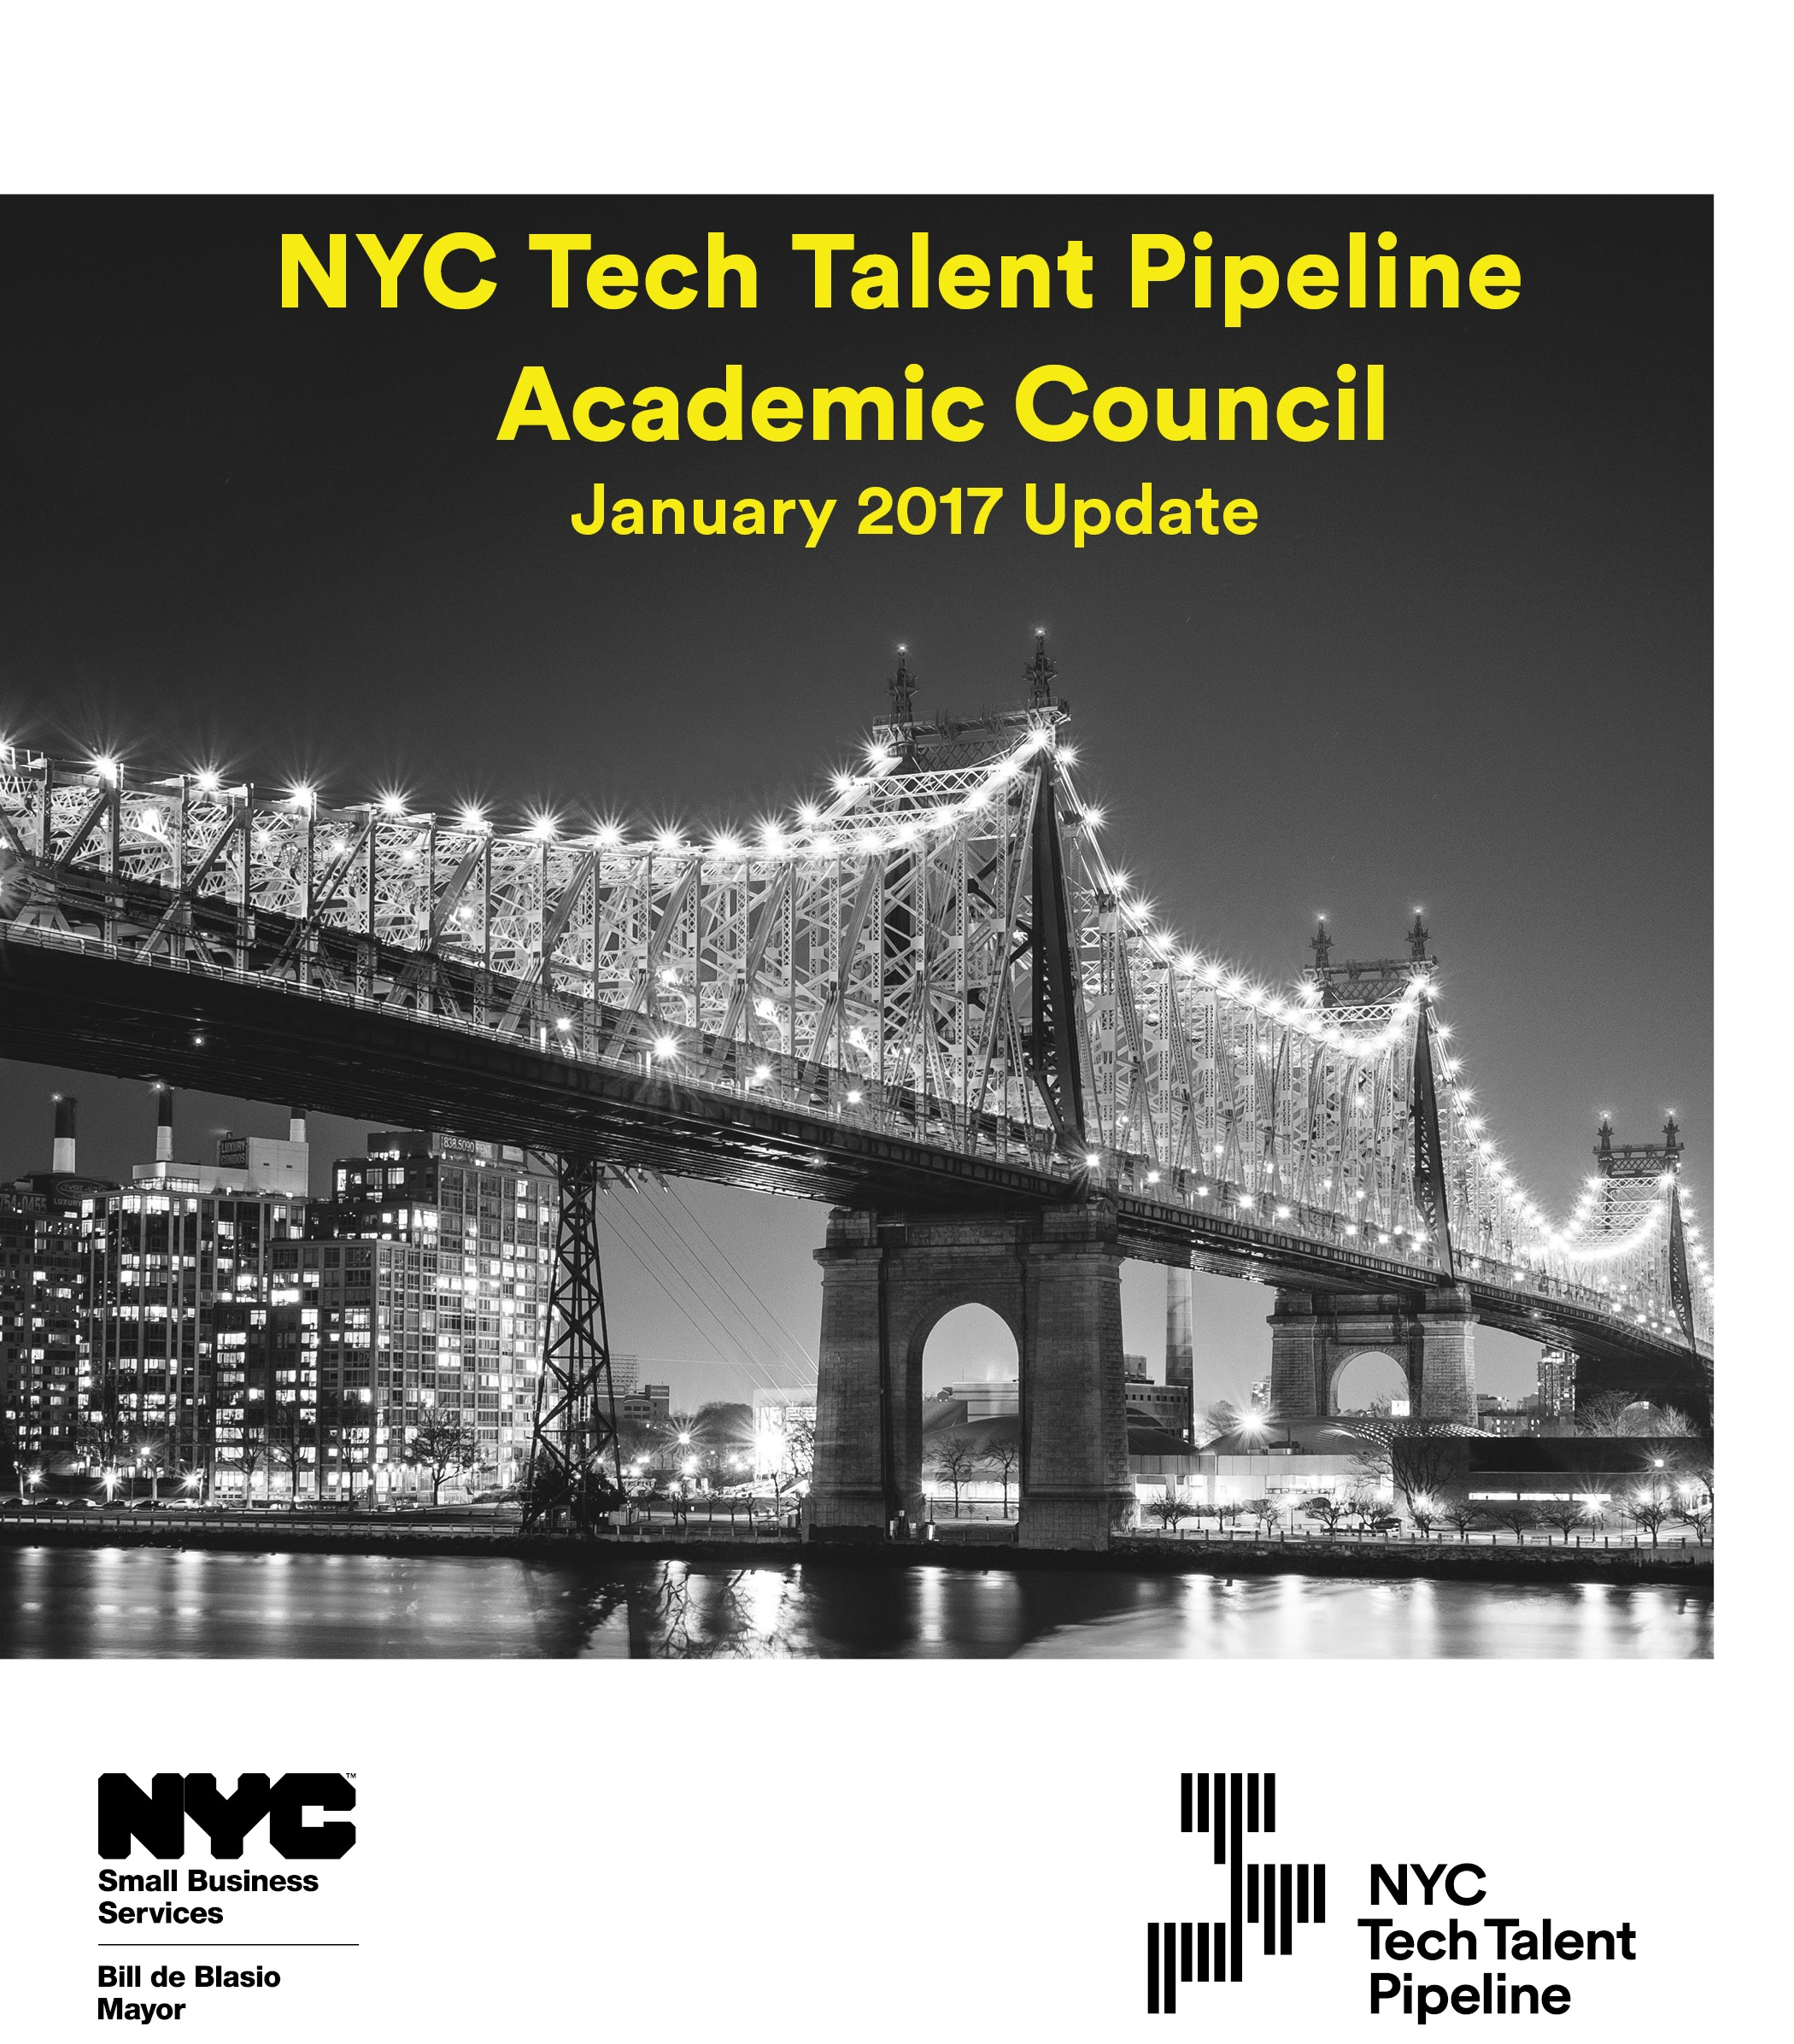 The following academic institutions have committed to working with the NYC Tech Talent Pipeline to ensure the alignment of computer science education and tech workforce needs across the five boroughs.   Borough of Manhattan Community College, The City College of New York, College of Staten Island, The Fu Foundation School of Engineering and Applied Sciences at Columbia University, Cornell Tech, Hunter College, John Jay College of Criminal Justice, LaGuardia Community College, Lehman College, Macaulay Honors College, New York City College of Technology, NYU Tandon School of Engineering, Pace University, Pratt Institute, and Queens College.